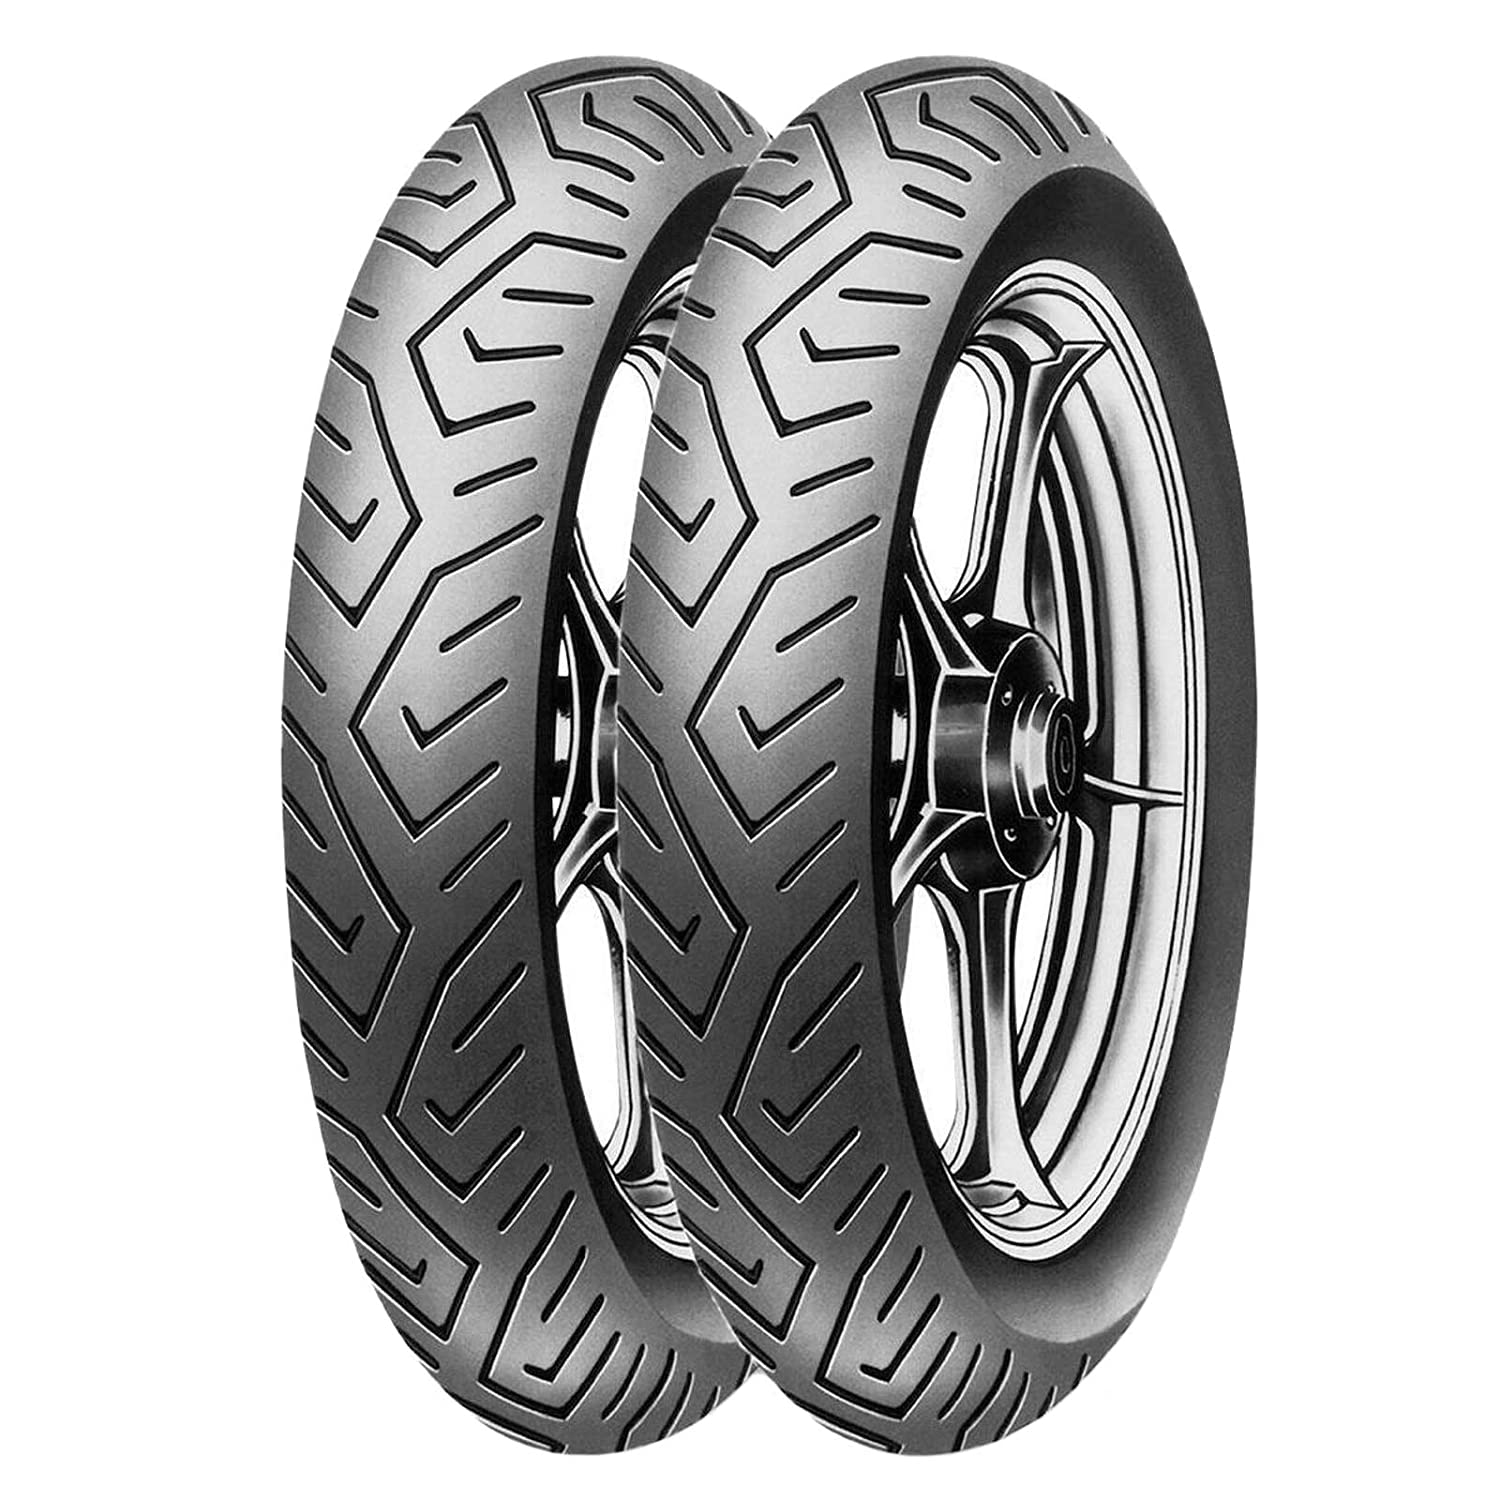 120//80 16 PEUGEOT LXR 125 200 Coppia gomme Scooter PIRELLI MT75 100//80 16